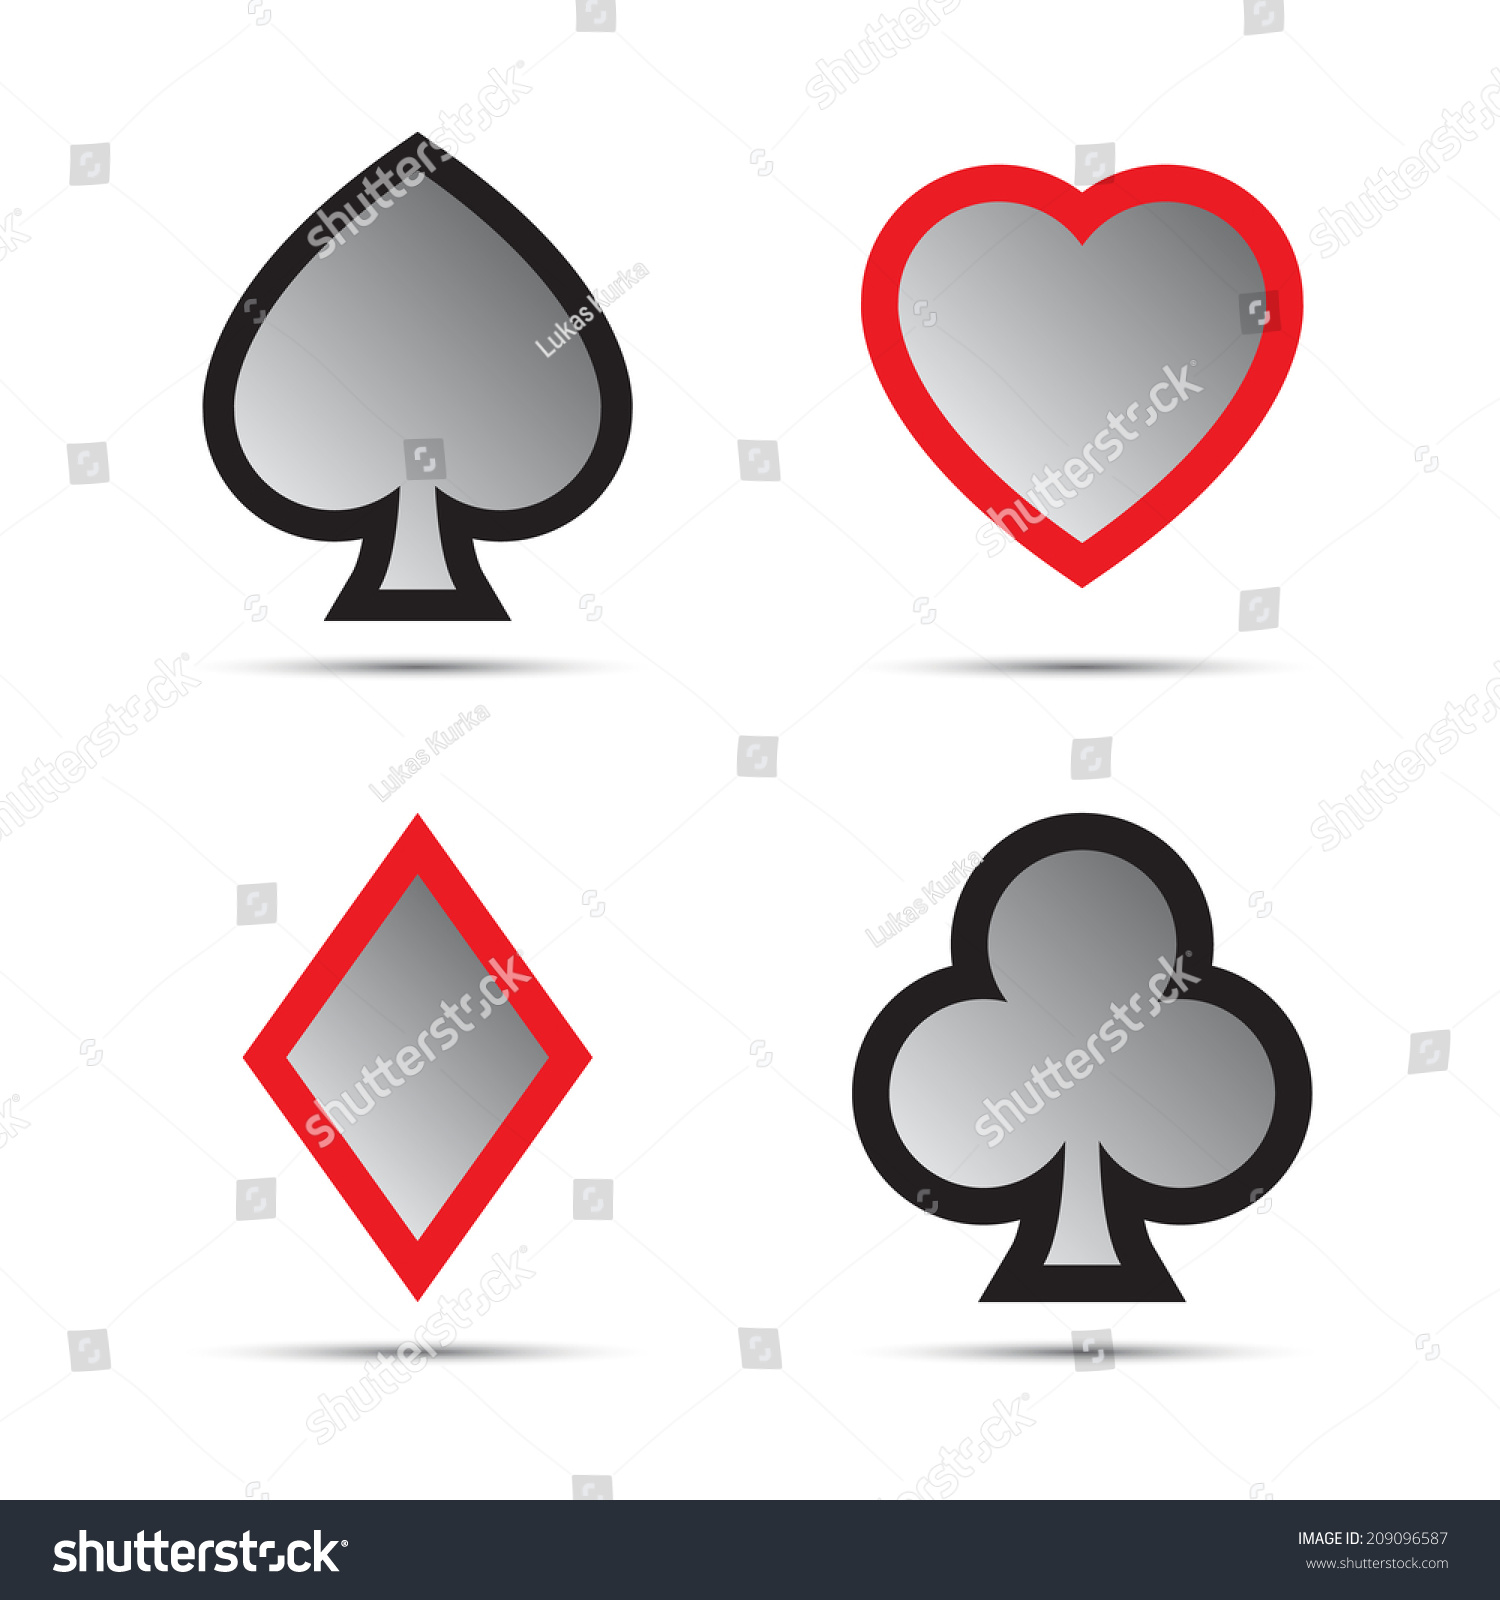 Playing card symbols isolated on white stock illustration playing card symbols isolated on white stock illustration 209096587 shutterstock biocorpaavc